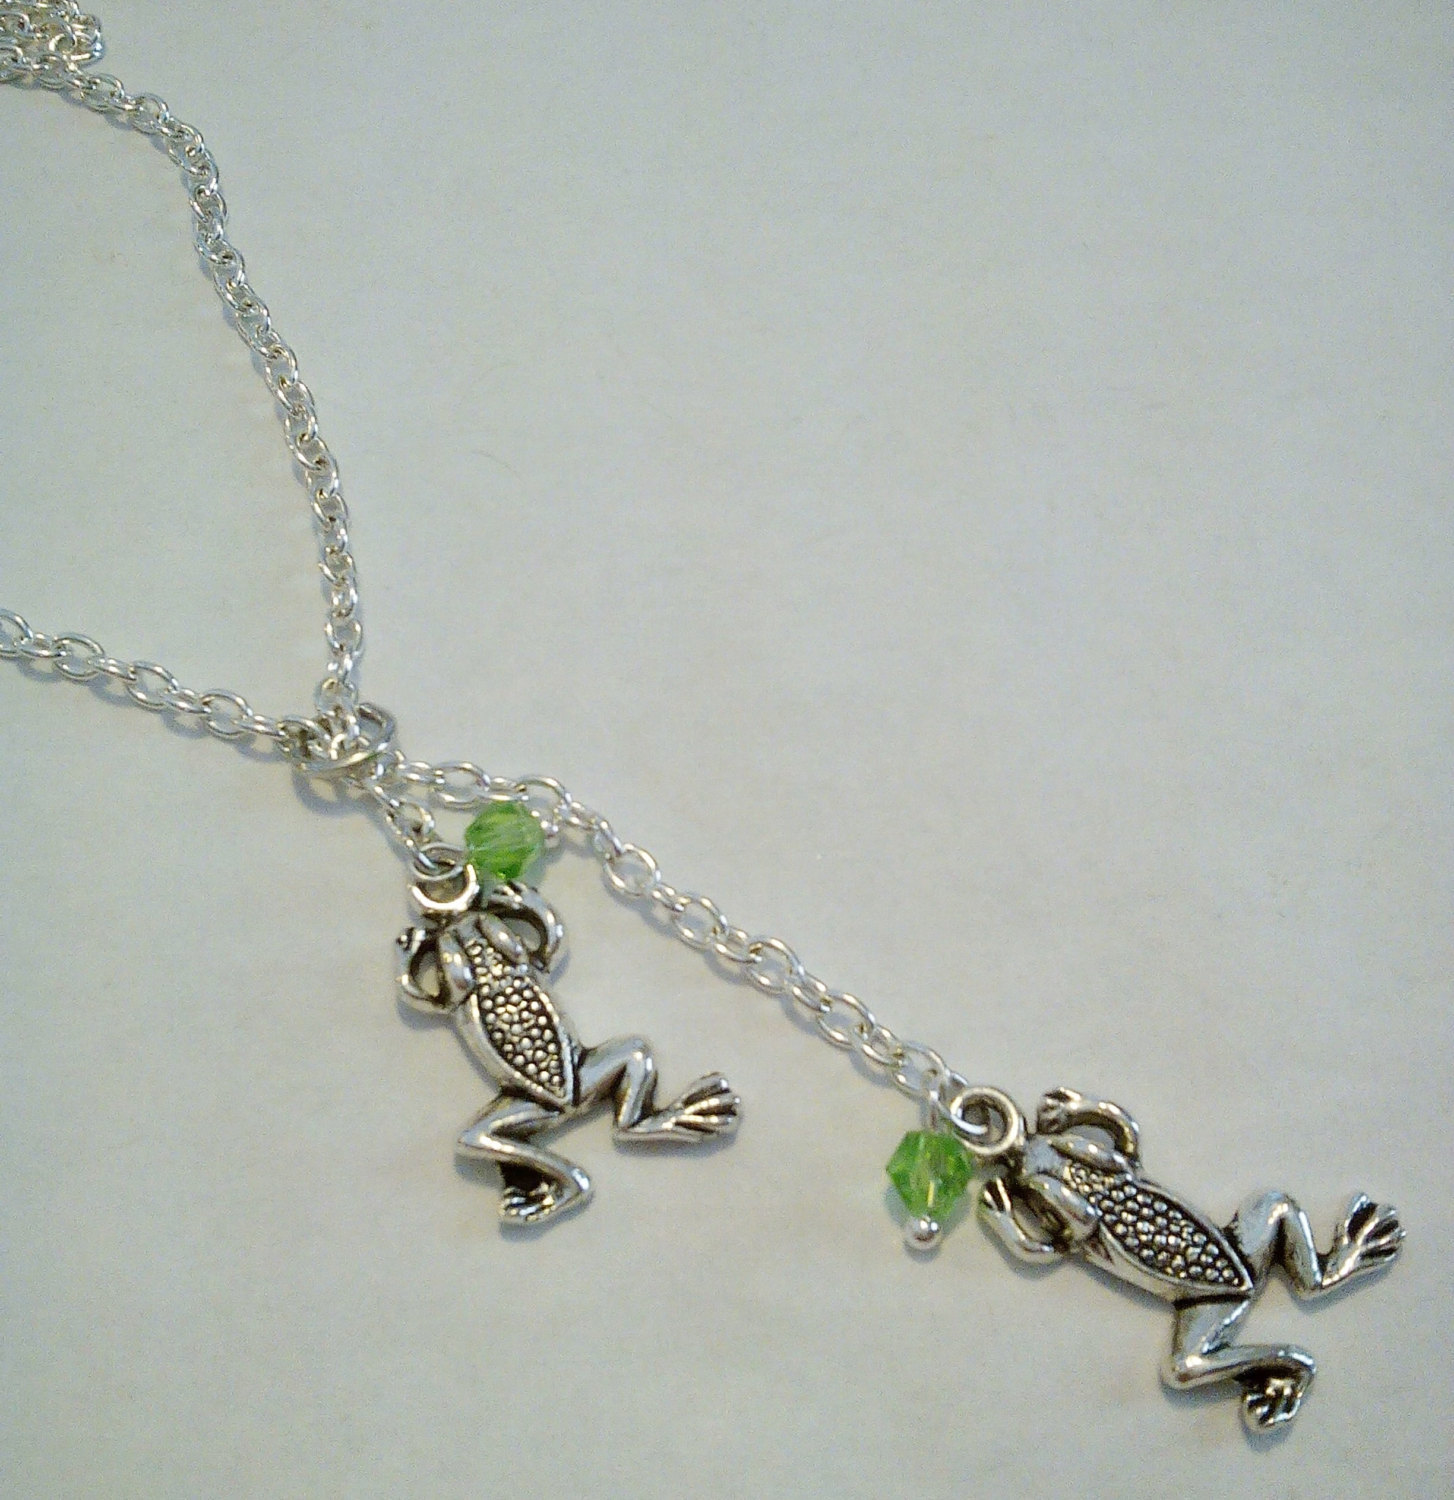 Tibetan Silver Frog Y Lariat Necklace 26 Inches Long